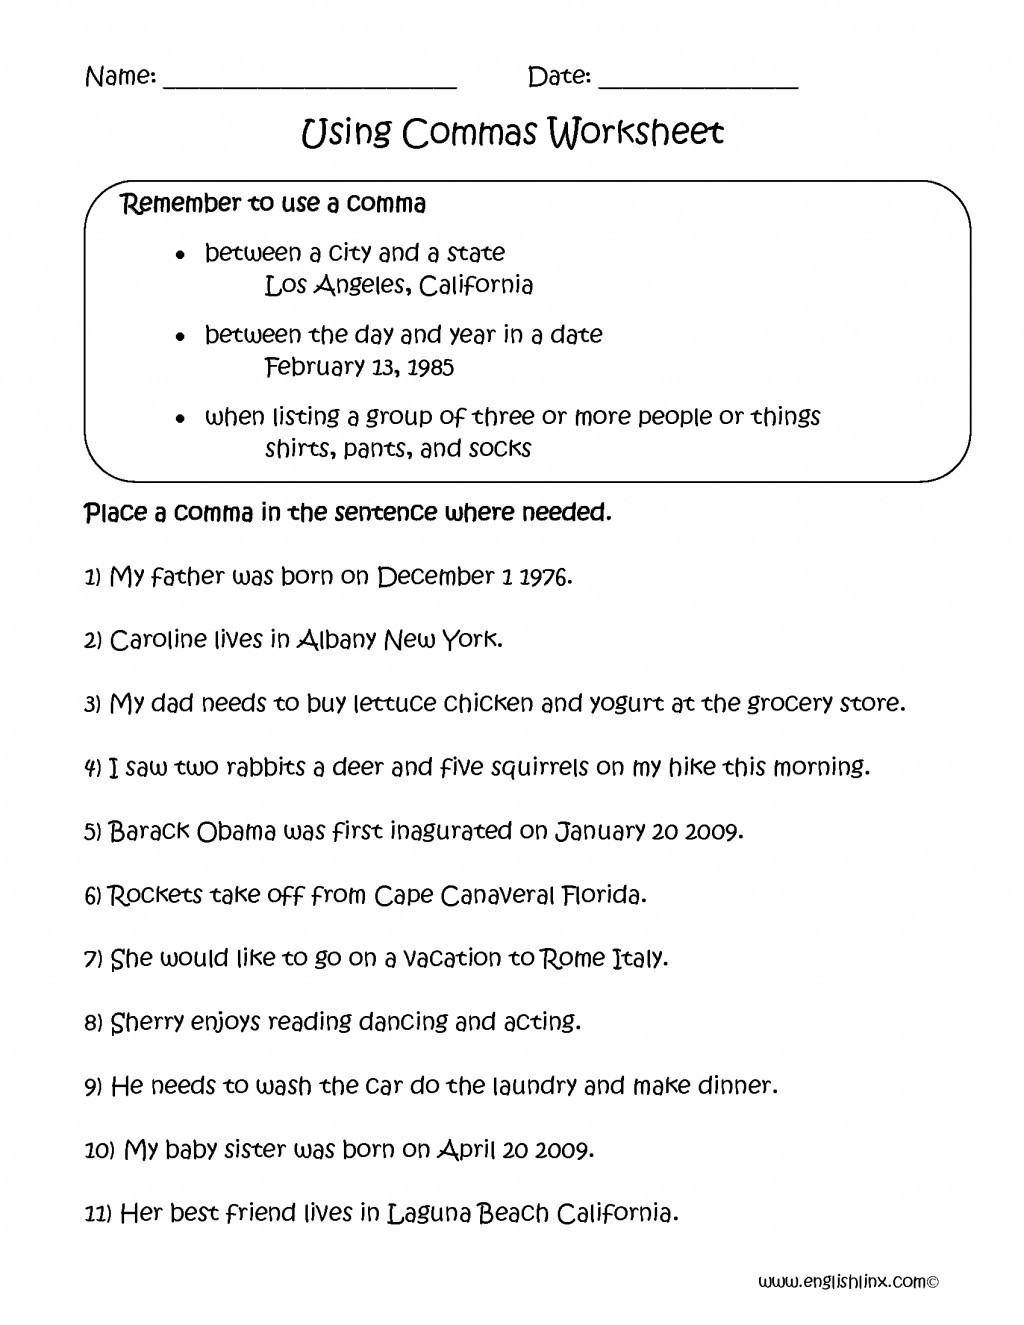 Proofreading Worksheets High School Grammar Worksheets Archives Worksheets Schools